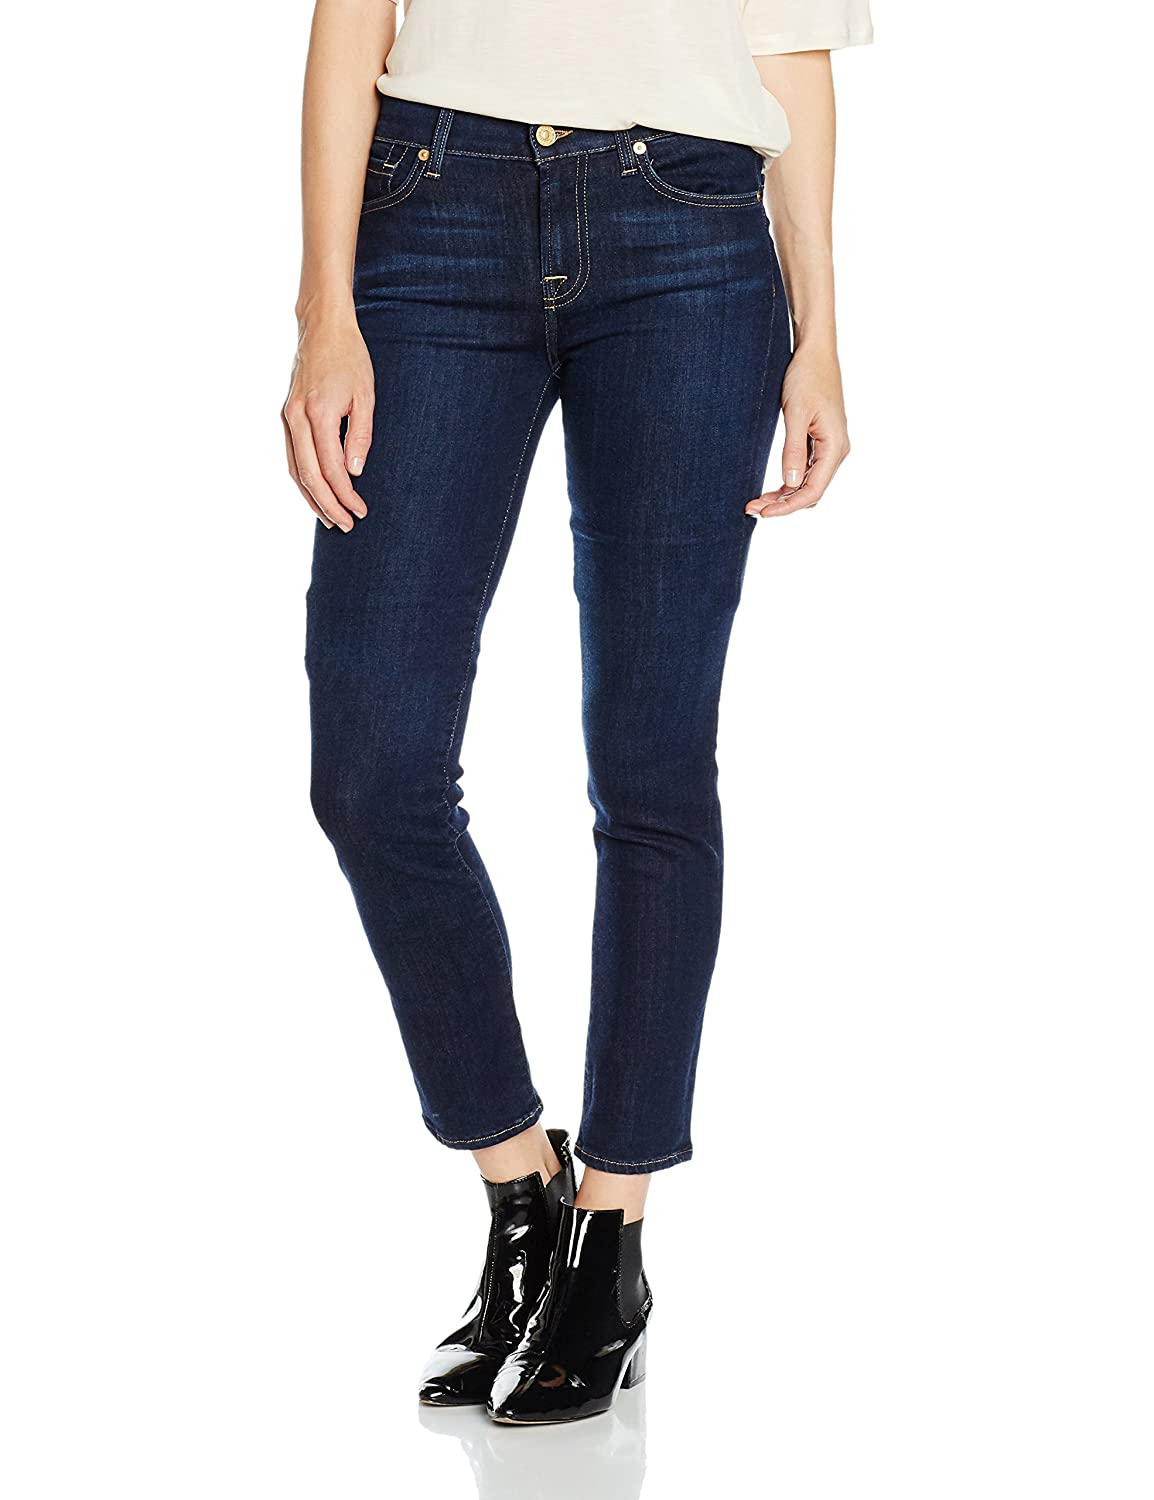 TALLA 32W / 33L. 7 For All Mankind Mid Rise Roxanne Jeans para Mujer